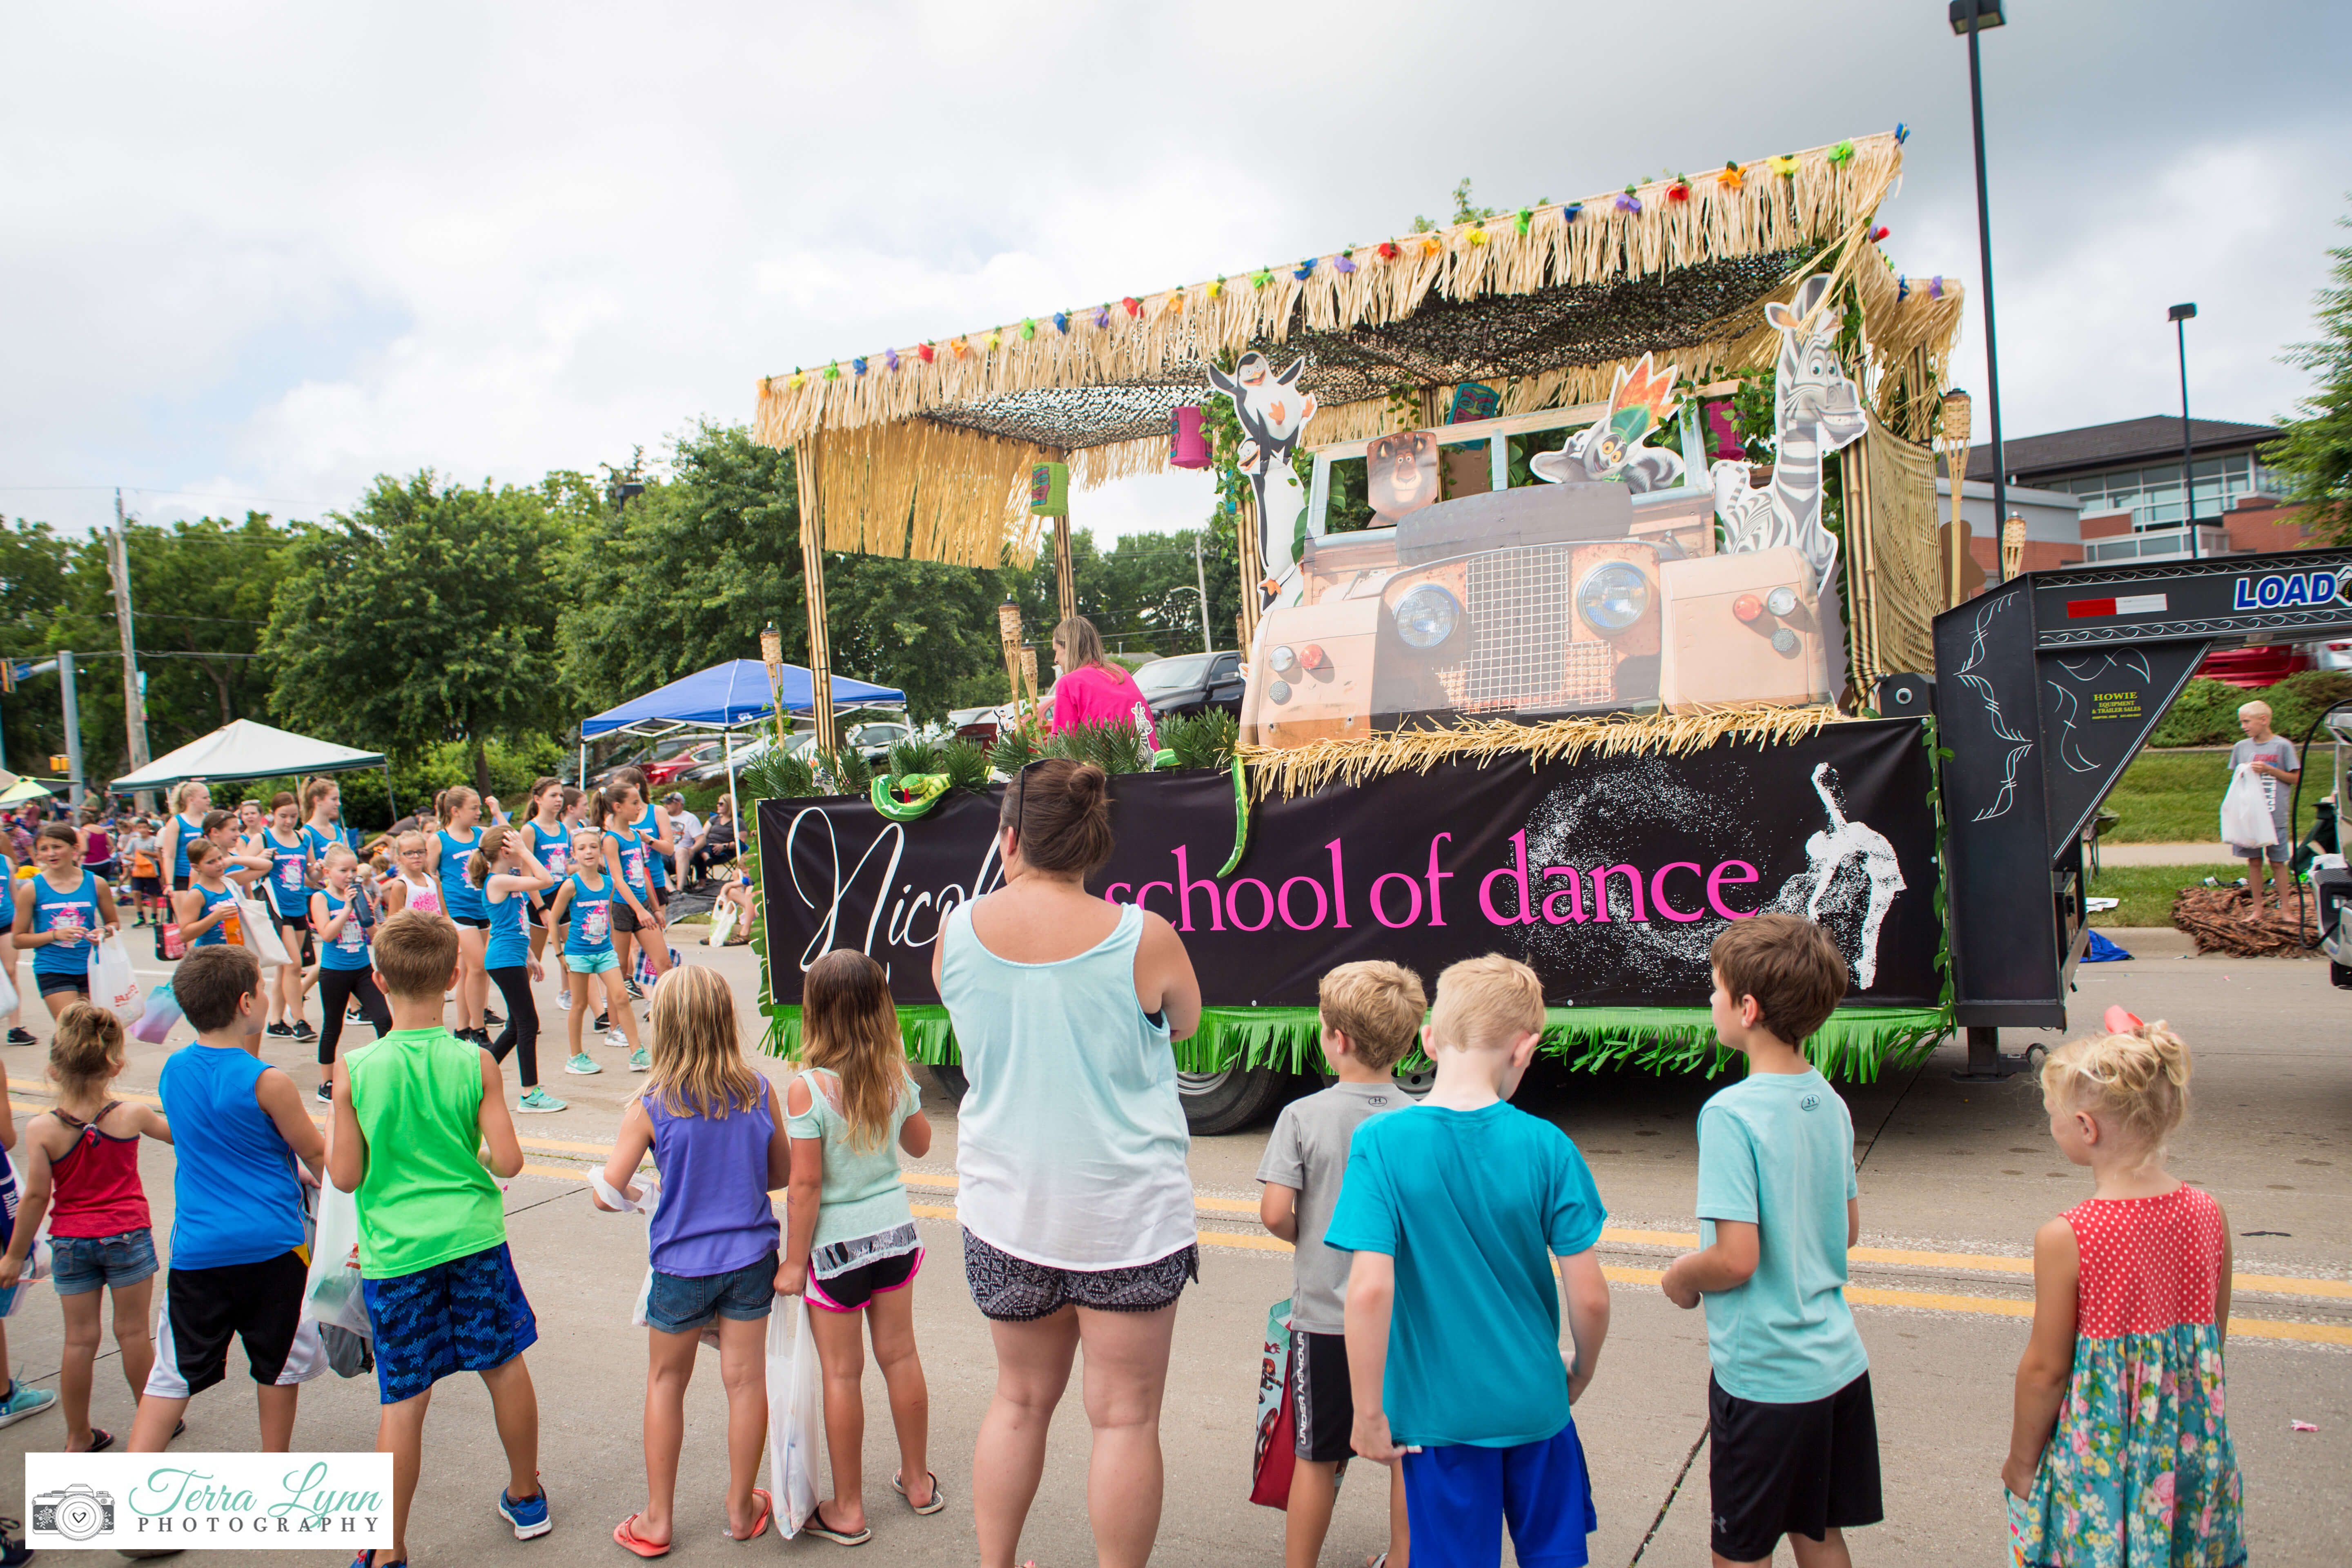 A picture of the Grand Parade float for Nicole's School of Dance.